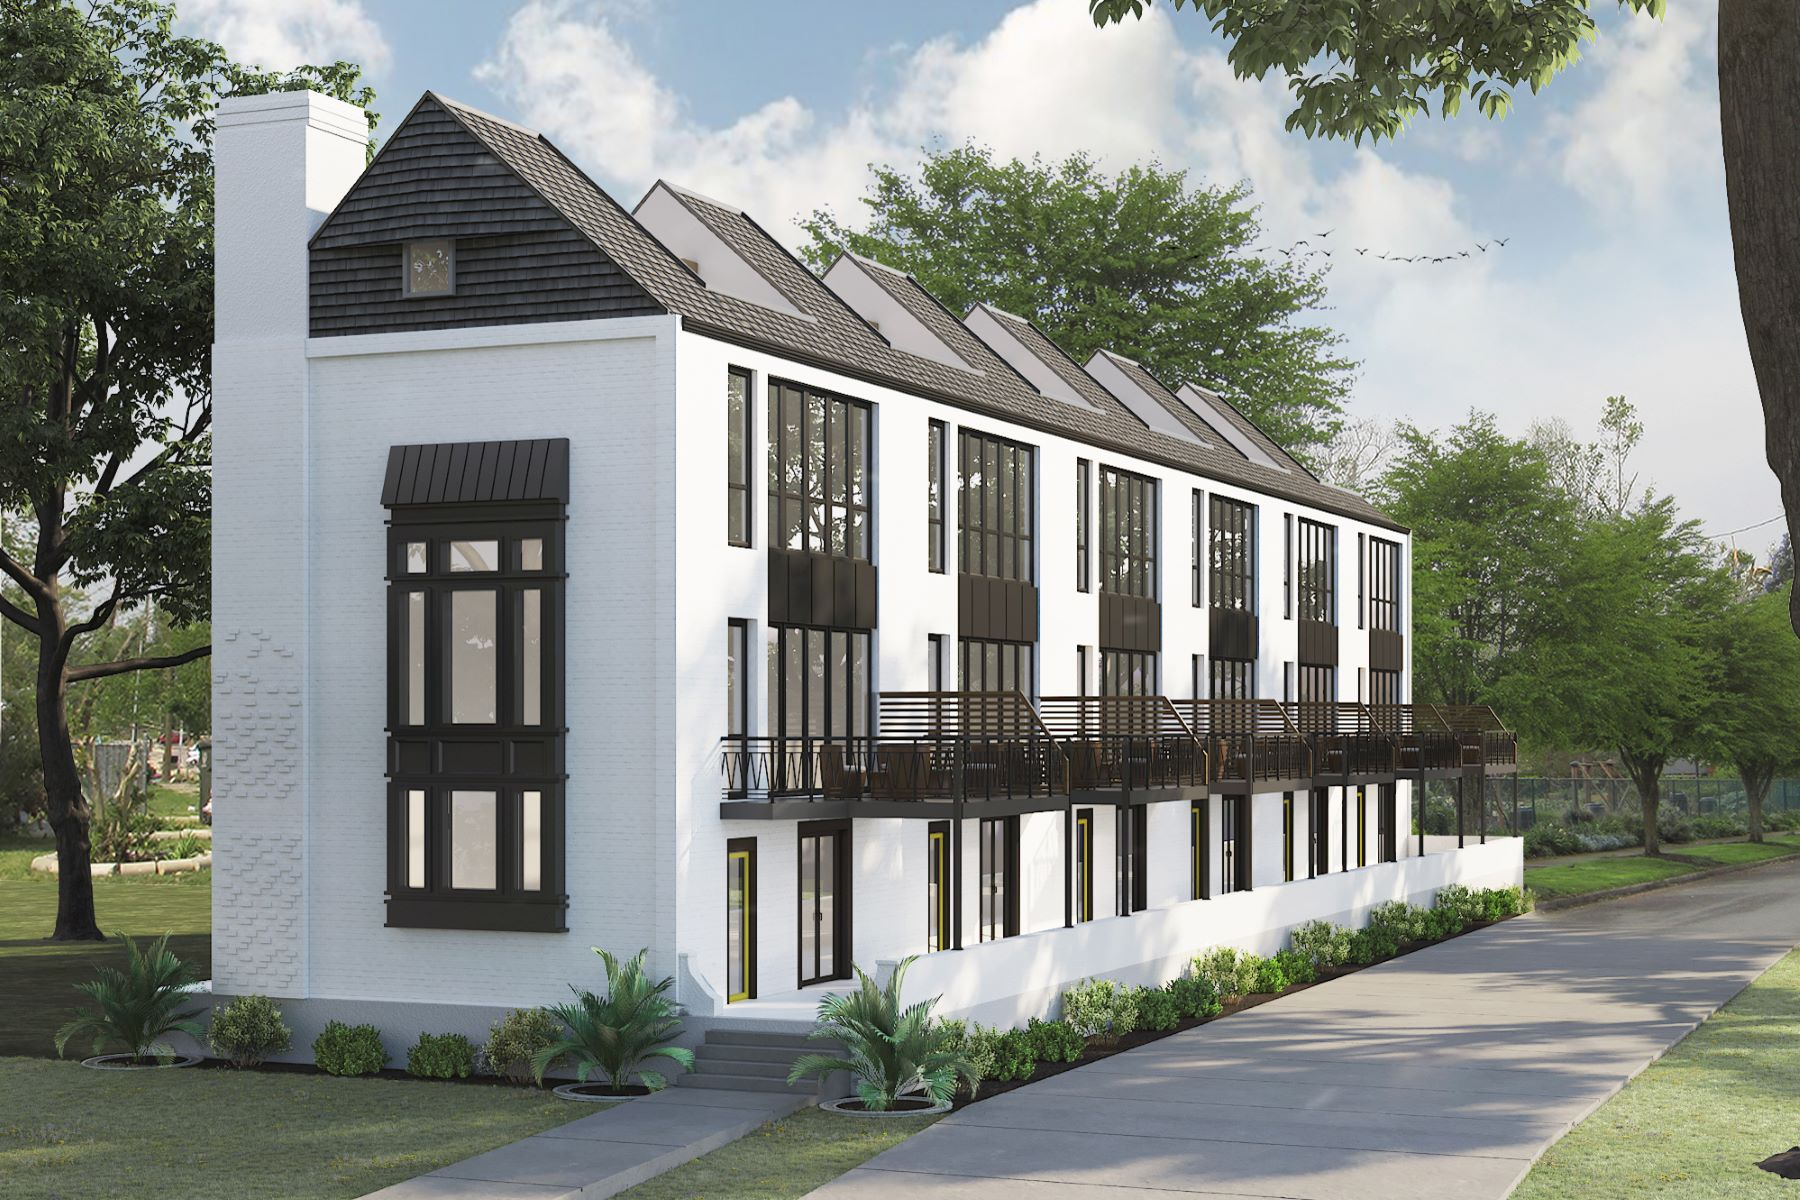 townhouses for Sale at West Village Townhomes - 106 Charles 4201 West Pine Boulevard 106 - Charles St. Louis, Missouri 63108 United States